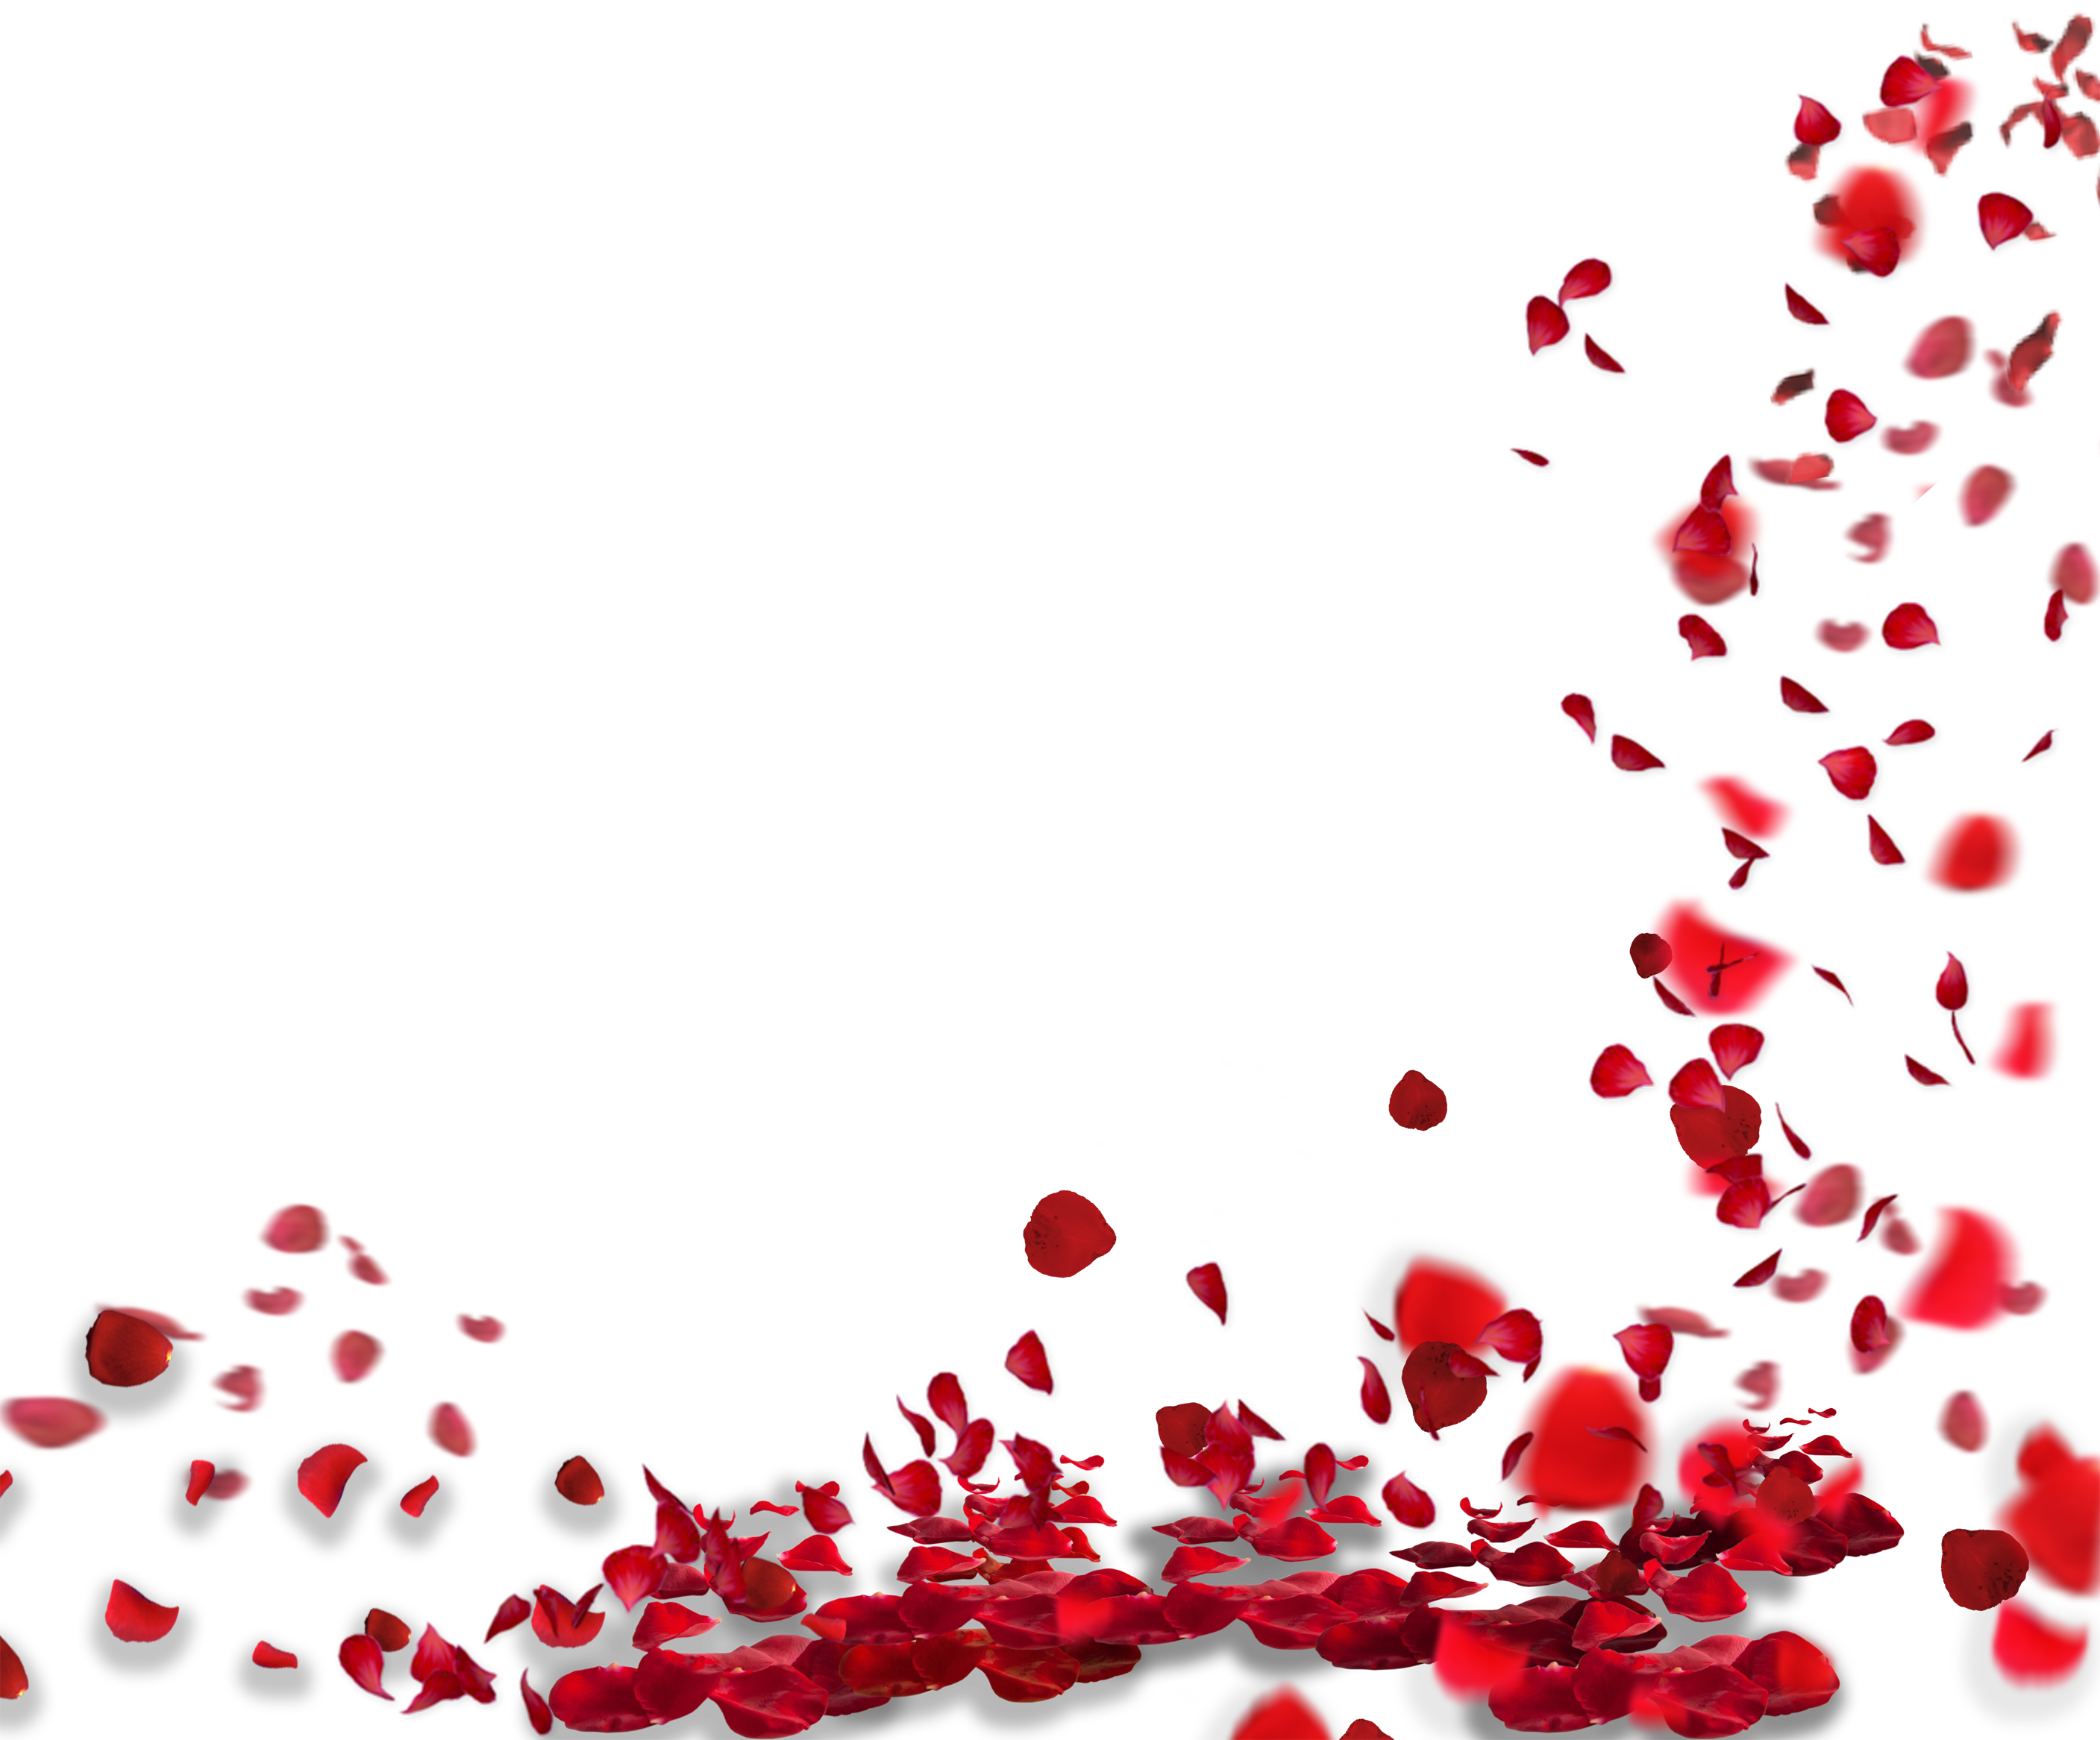 Rose petals png. Images hd quality free